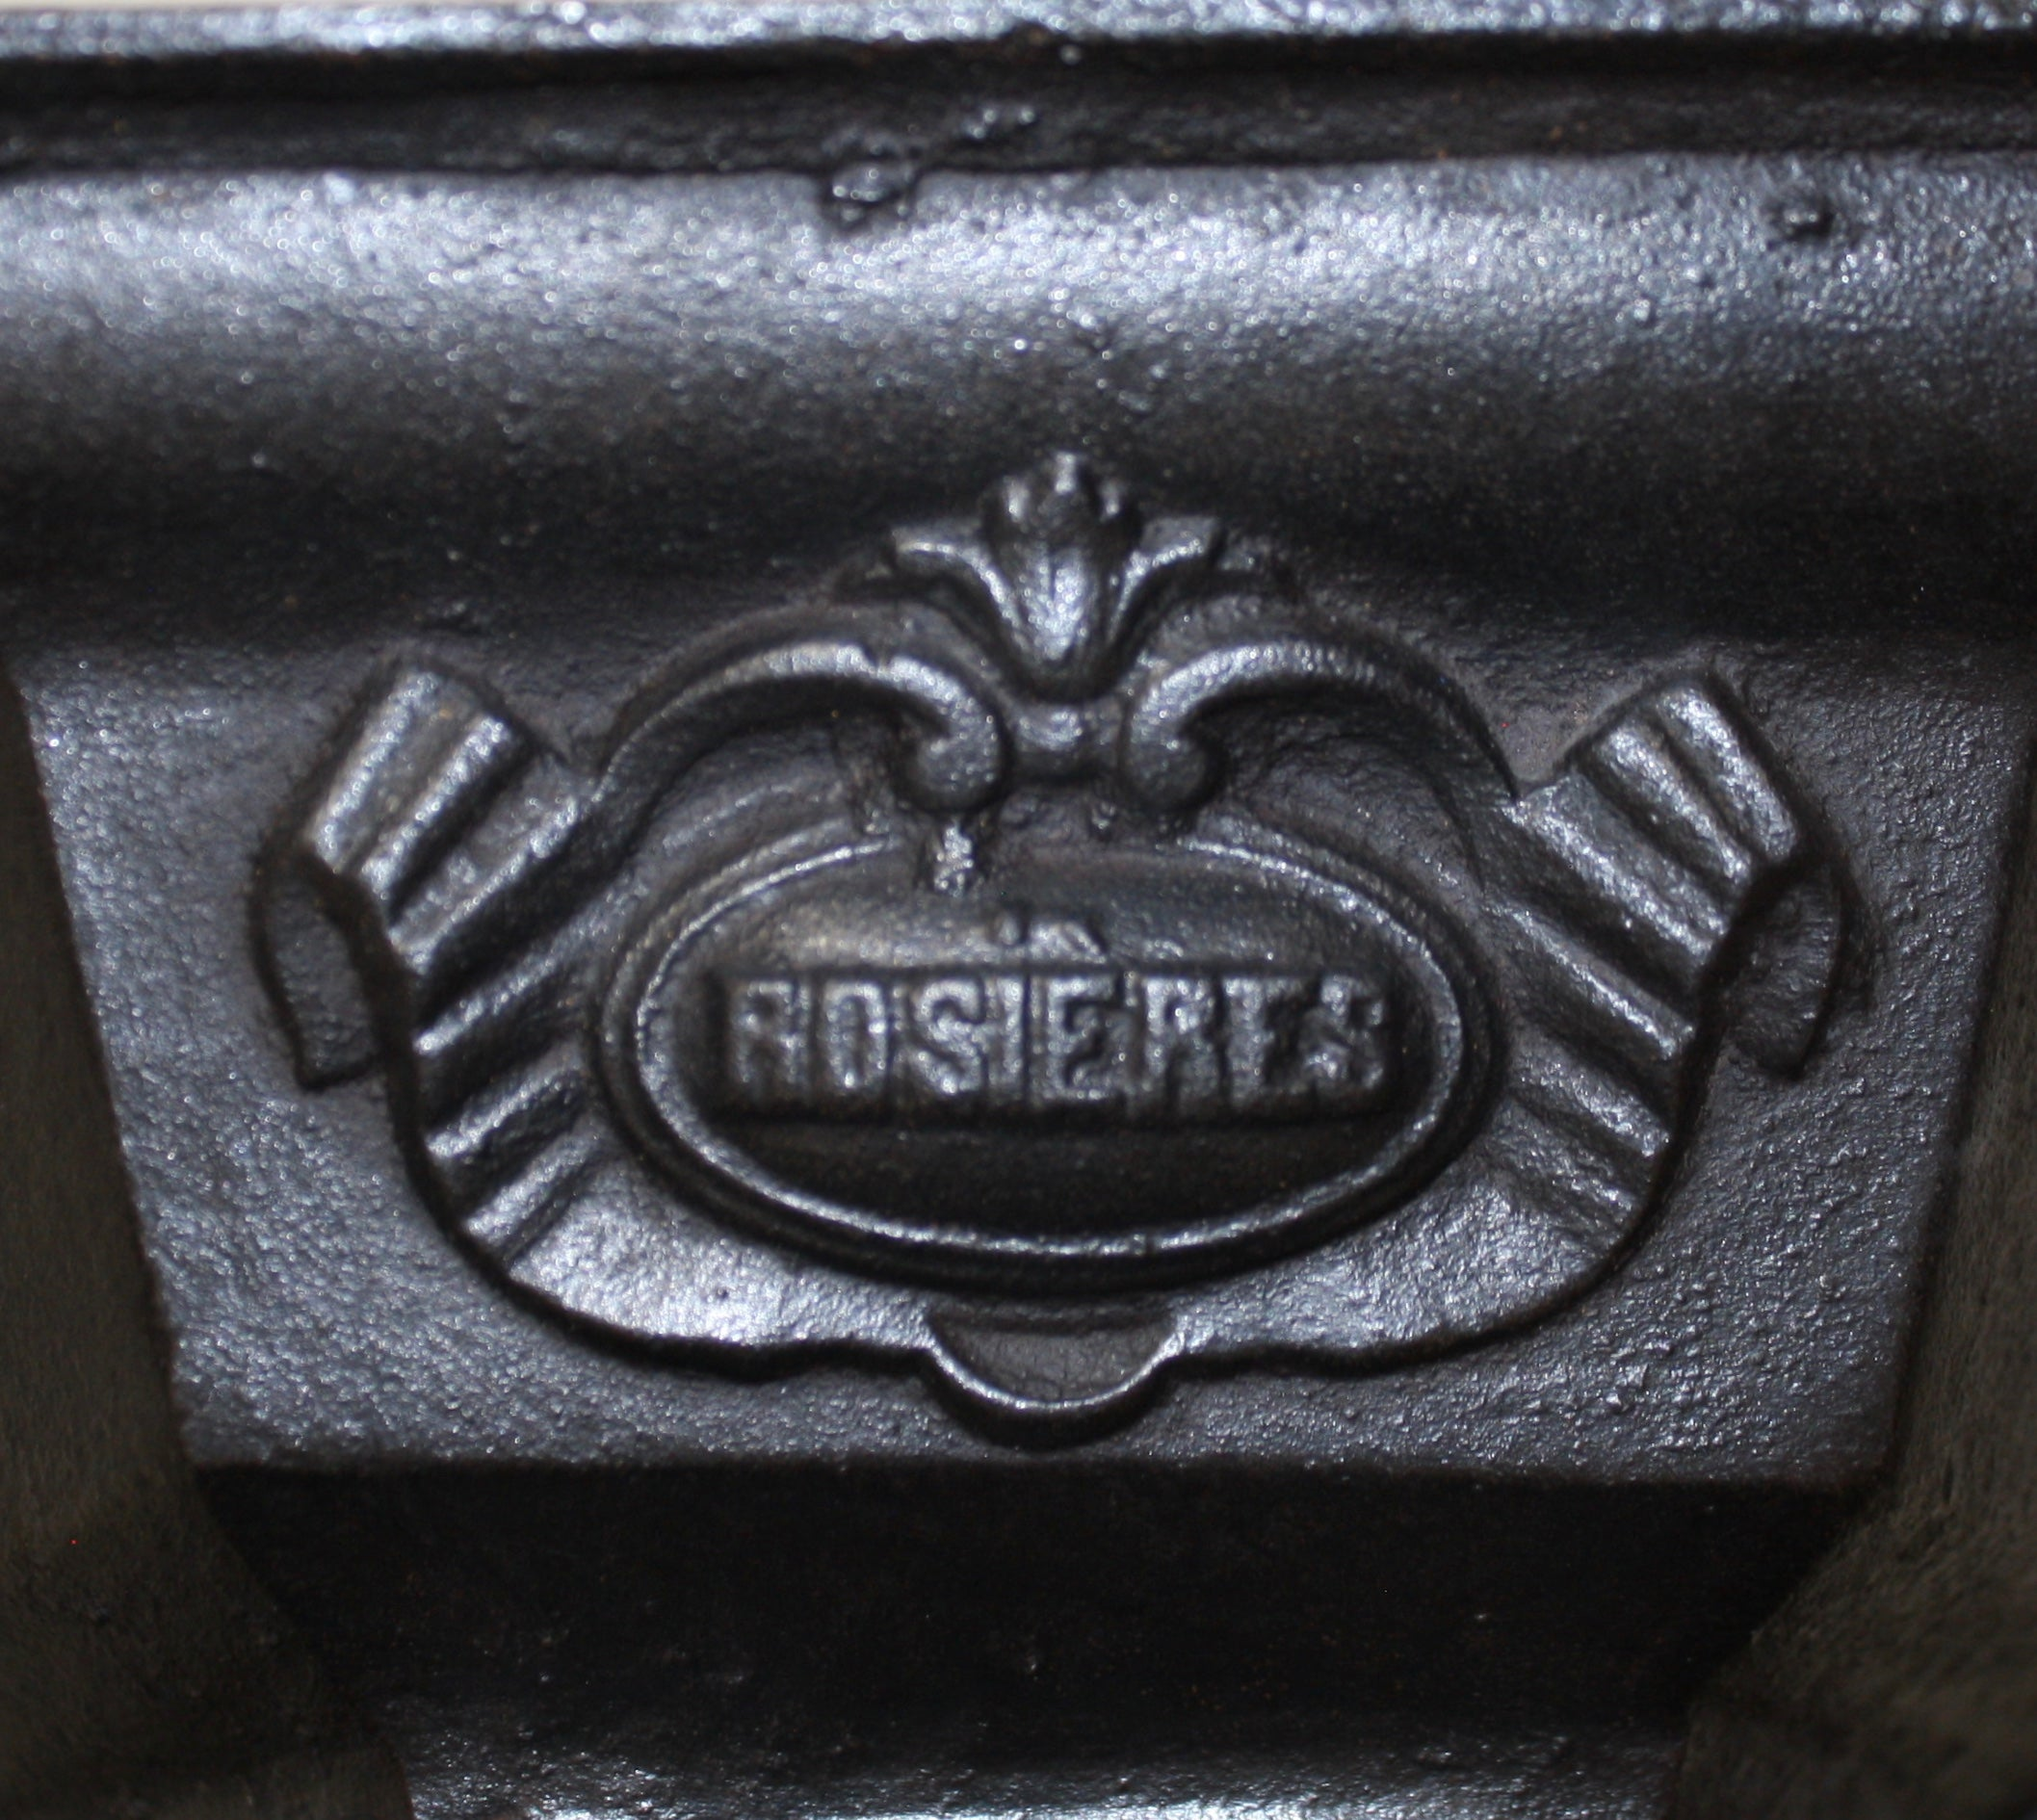 French Rosières Laundry Stove with Six Irons